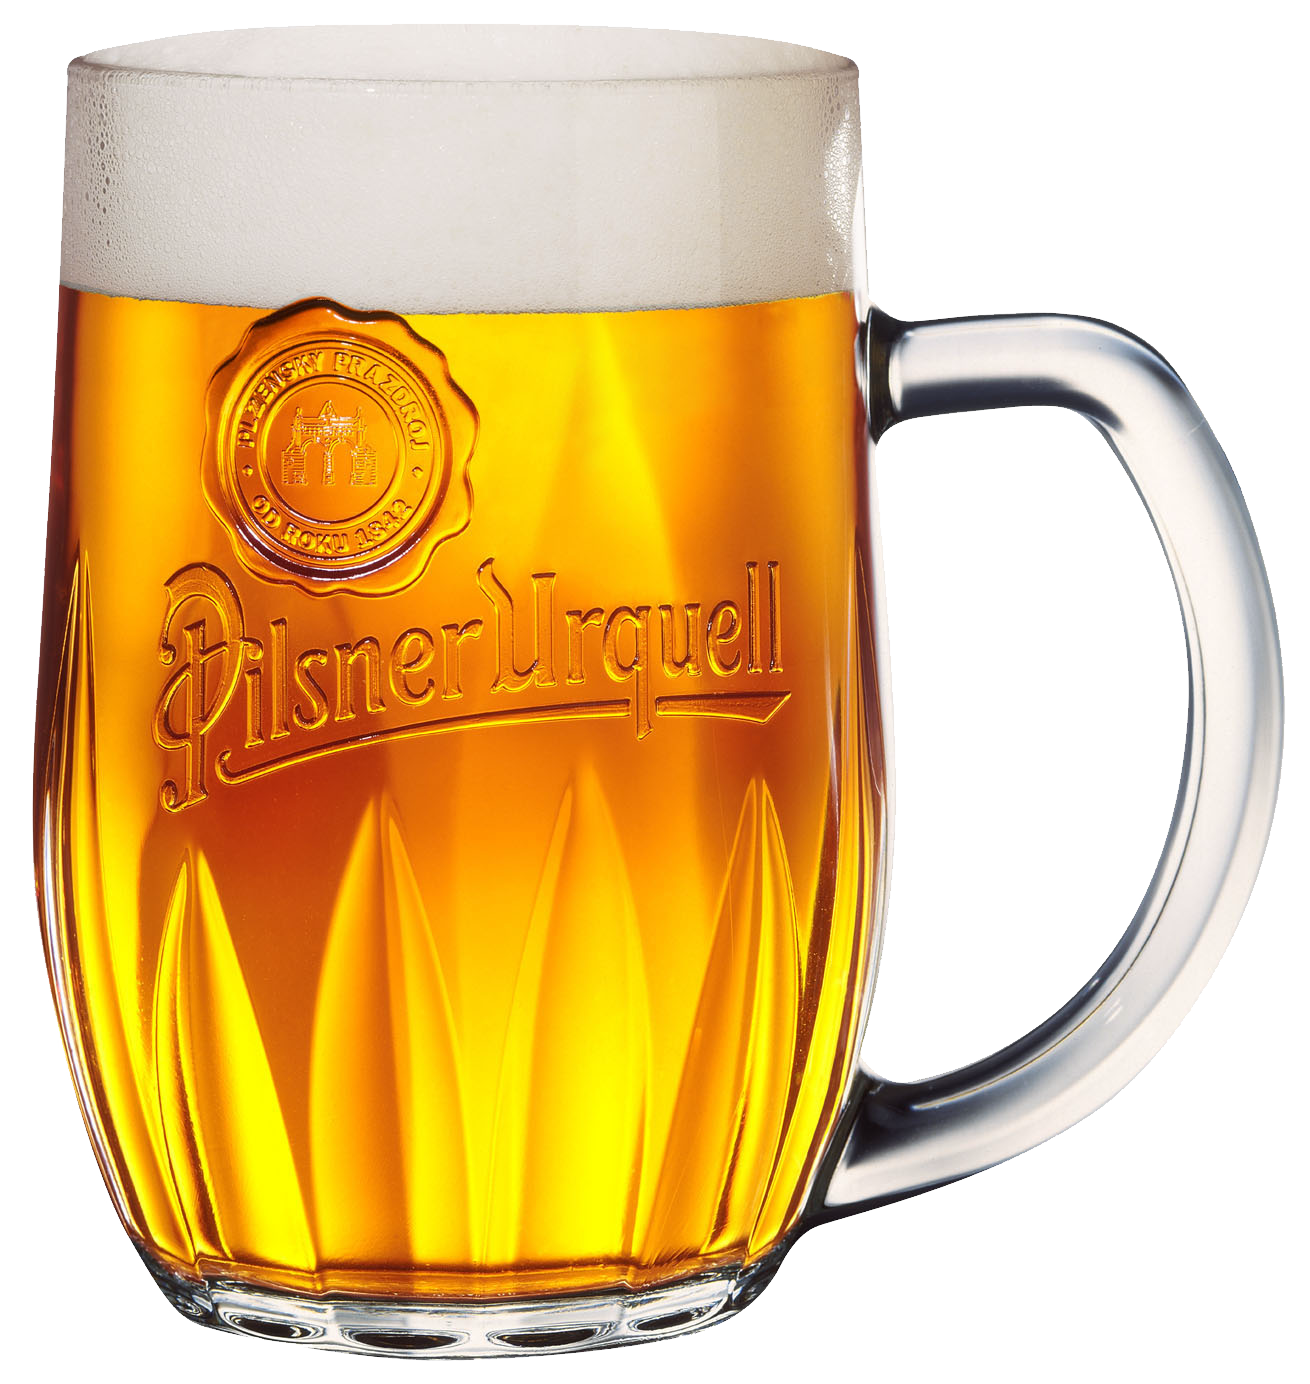 Pilsner clipart clipart free download Pilsner Urgquell Clipart PNG Image - PurePNG | Free ... clipart free download